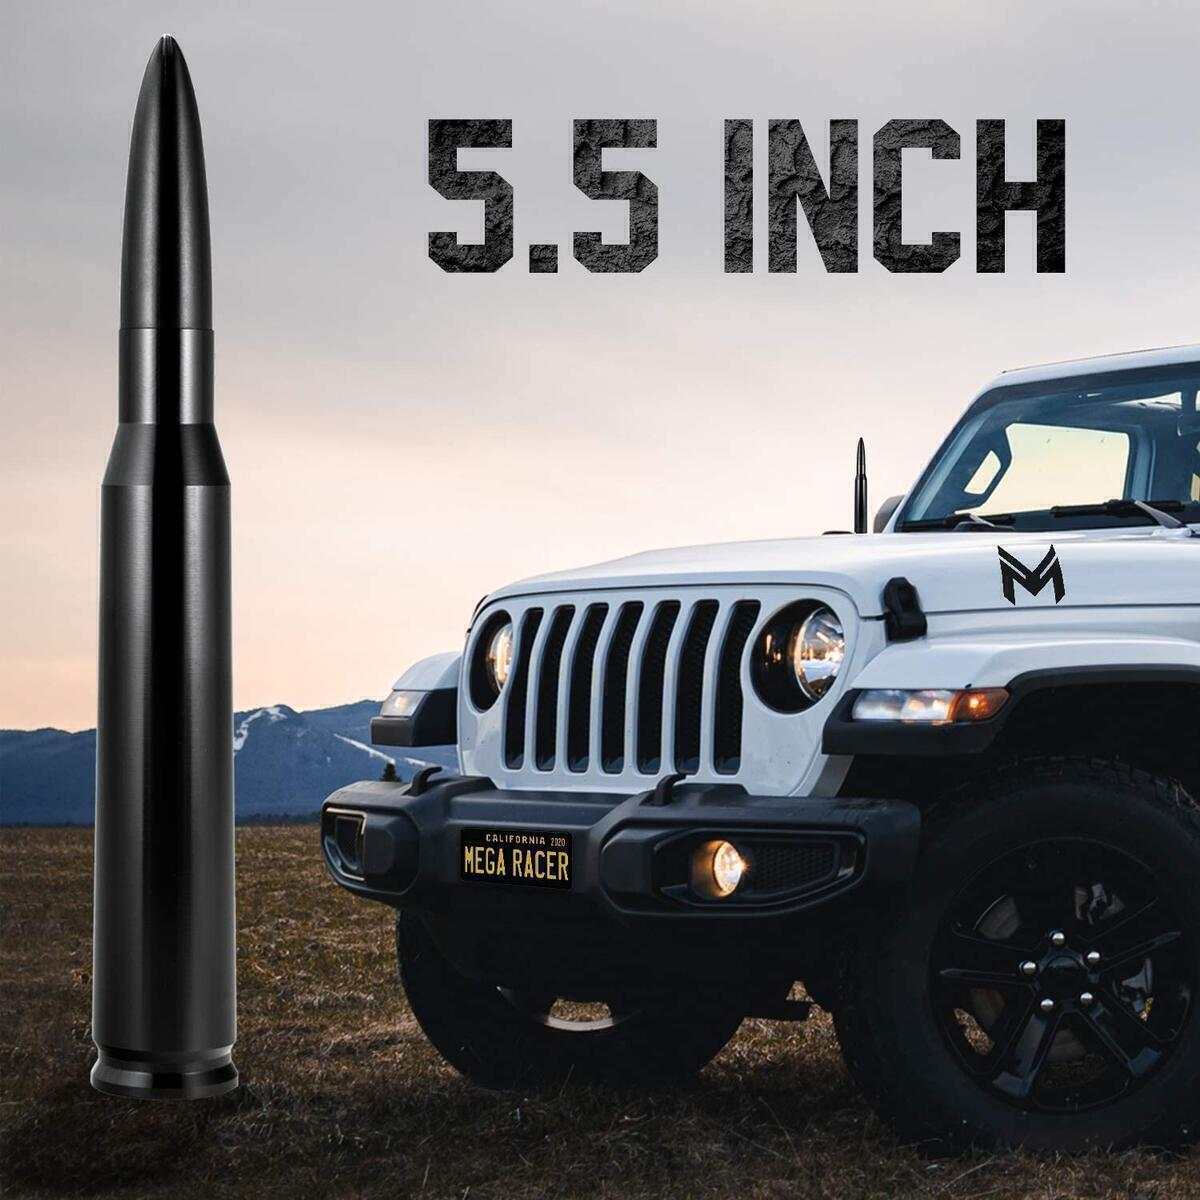 Mega Racer 50 Cal Bullet Antenna - 5.5 Inch AM/FM Compatible, Universal Fit for SUV, Solid Aluminum with Anti-Theft Design and Car Wash Safe - Black